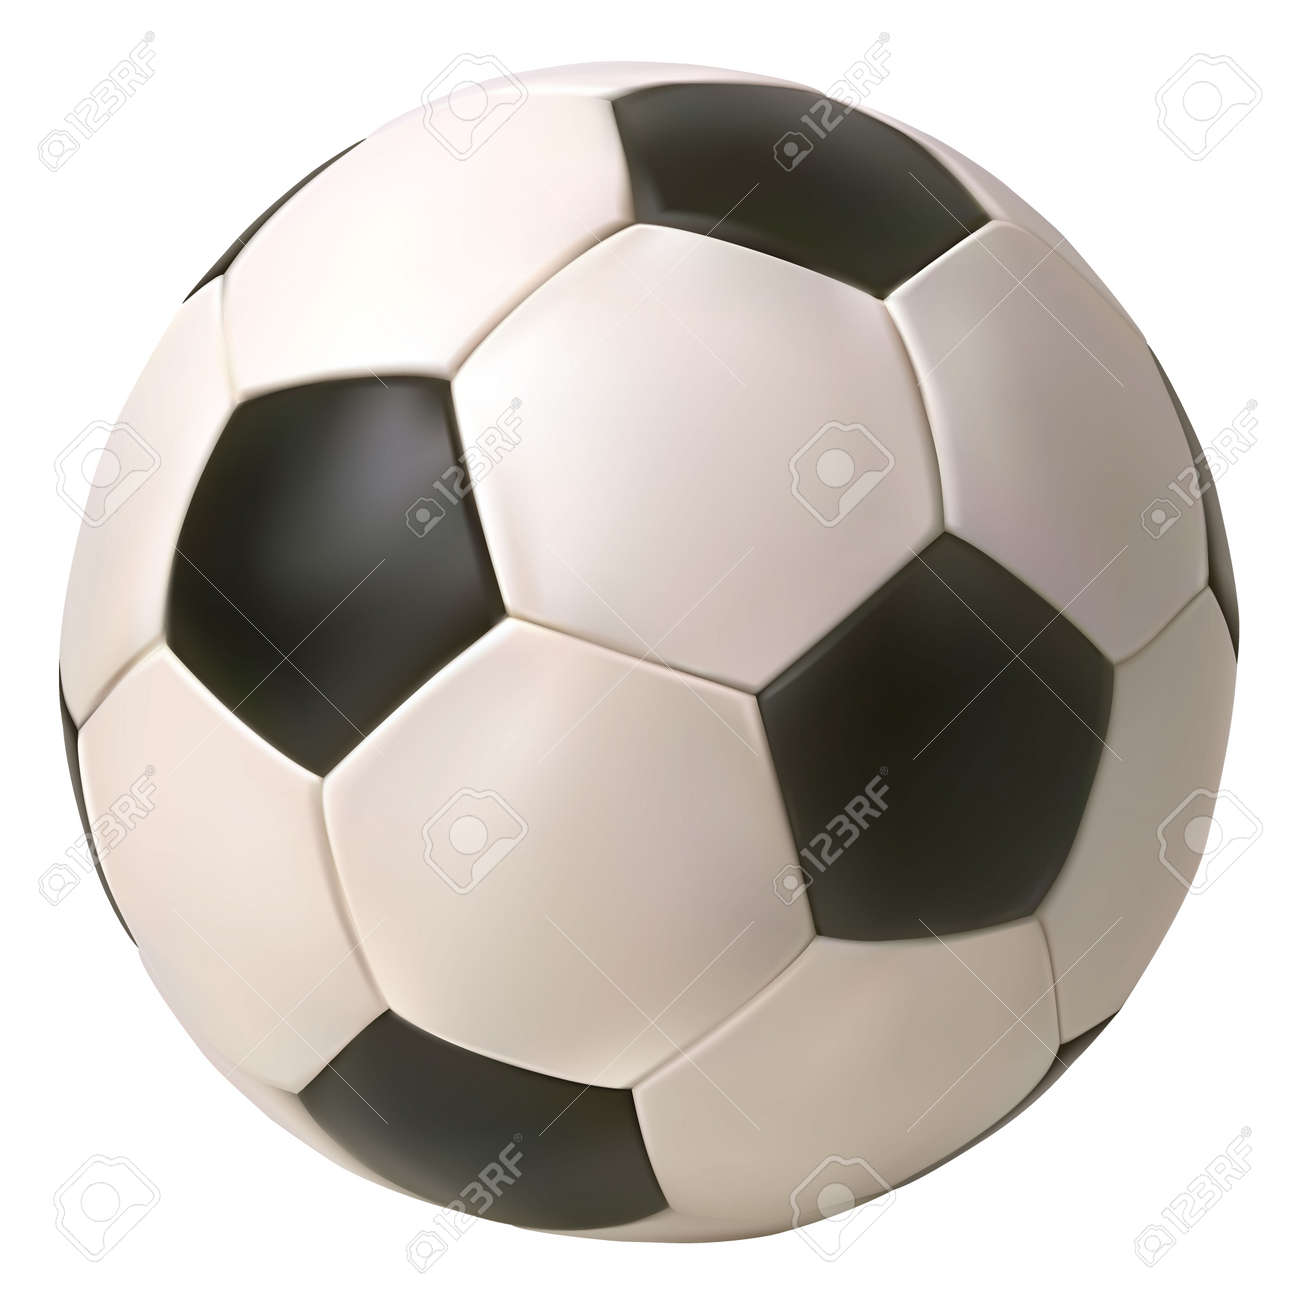 Realistic vector soccer ball. Isolated in white background. - 148533839